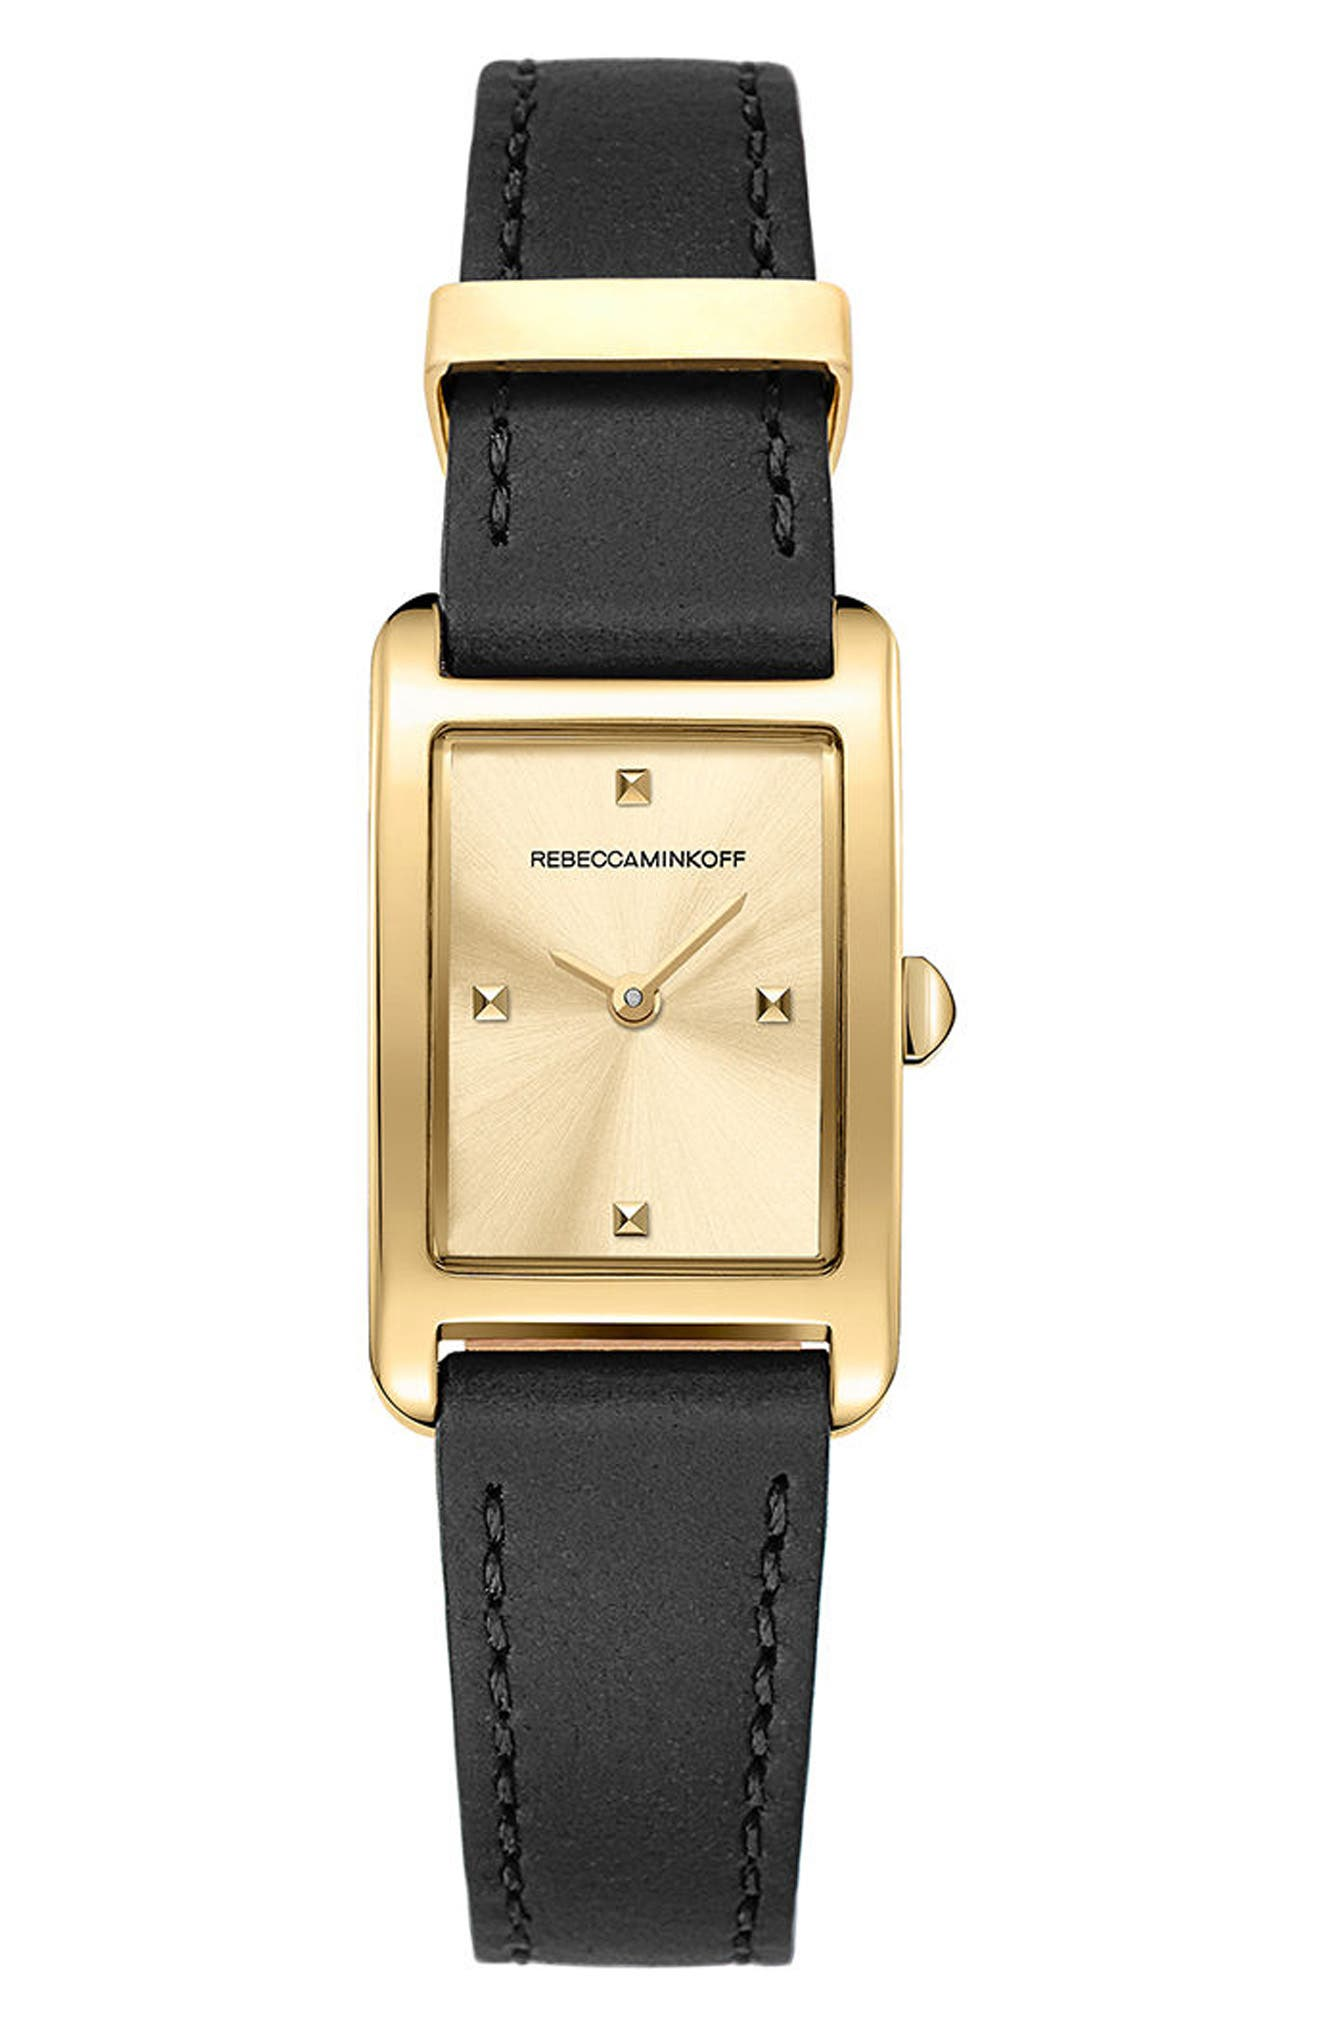 Main Image - Rebecca Minkoff Moment Leather Strap Watch, 19mm x 30mm